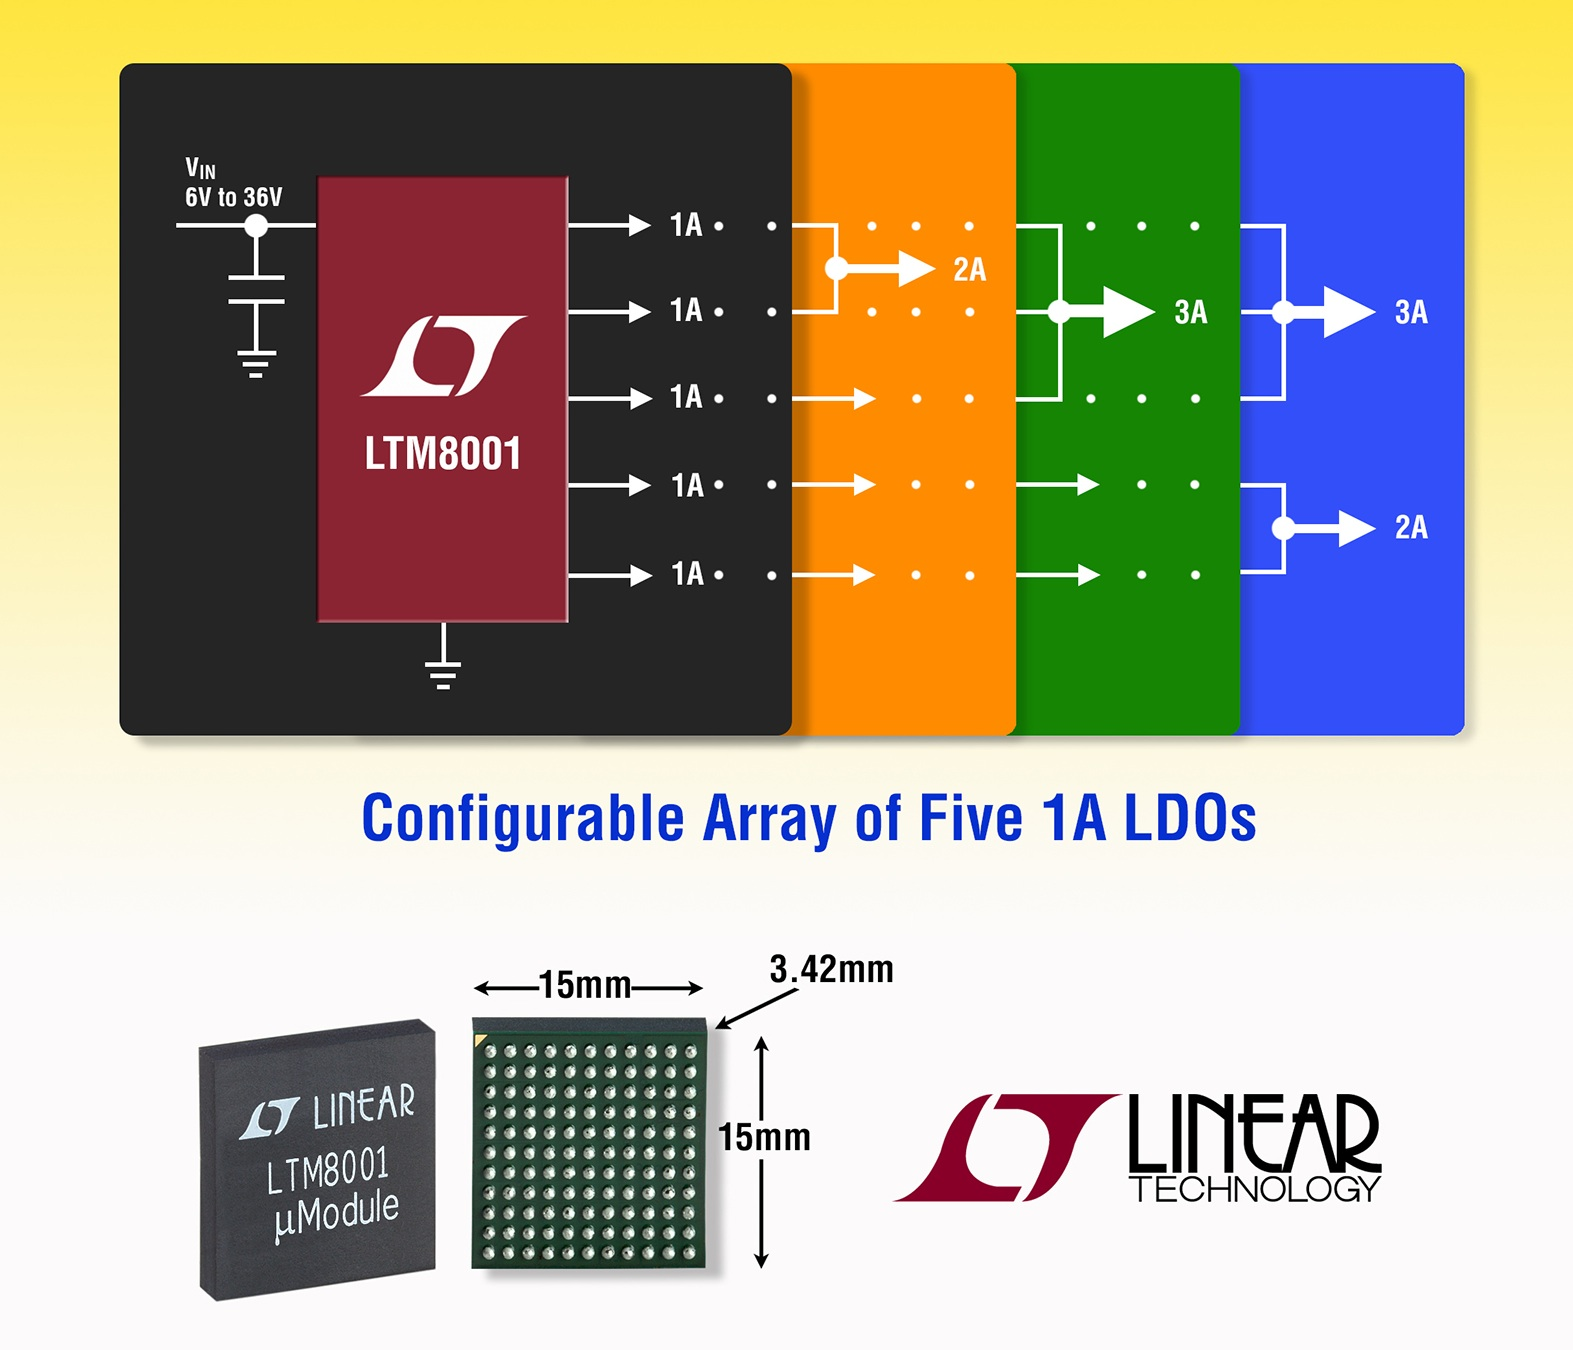 Configurable μModule regulator array has five low-noise 1A devices for multirail logic apps